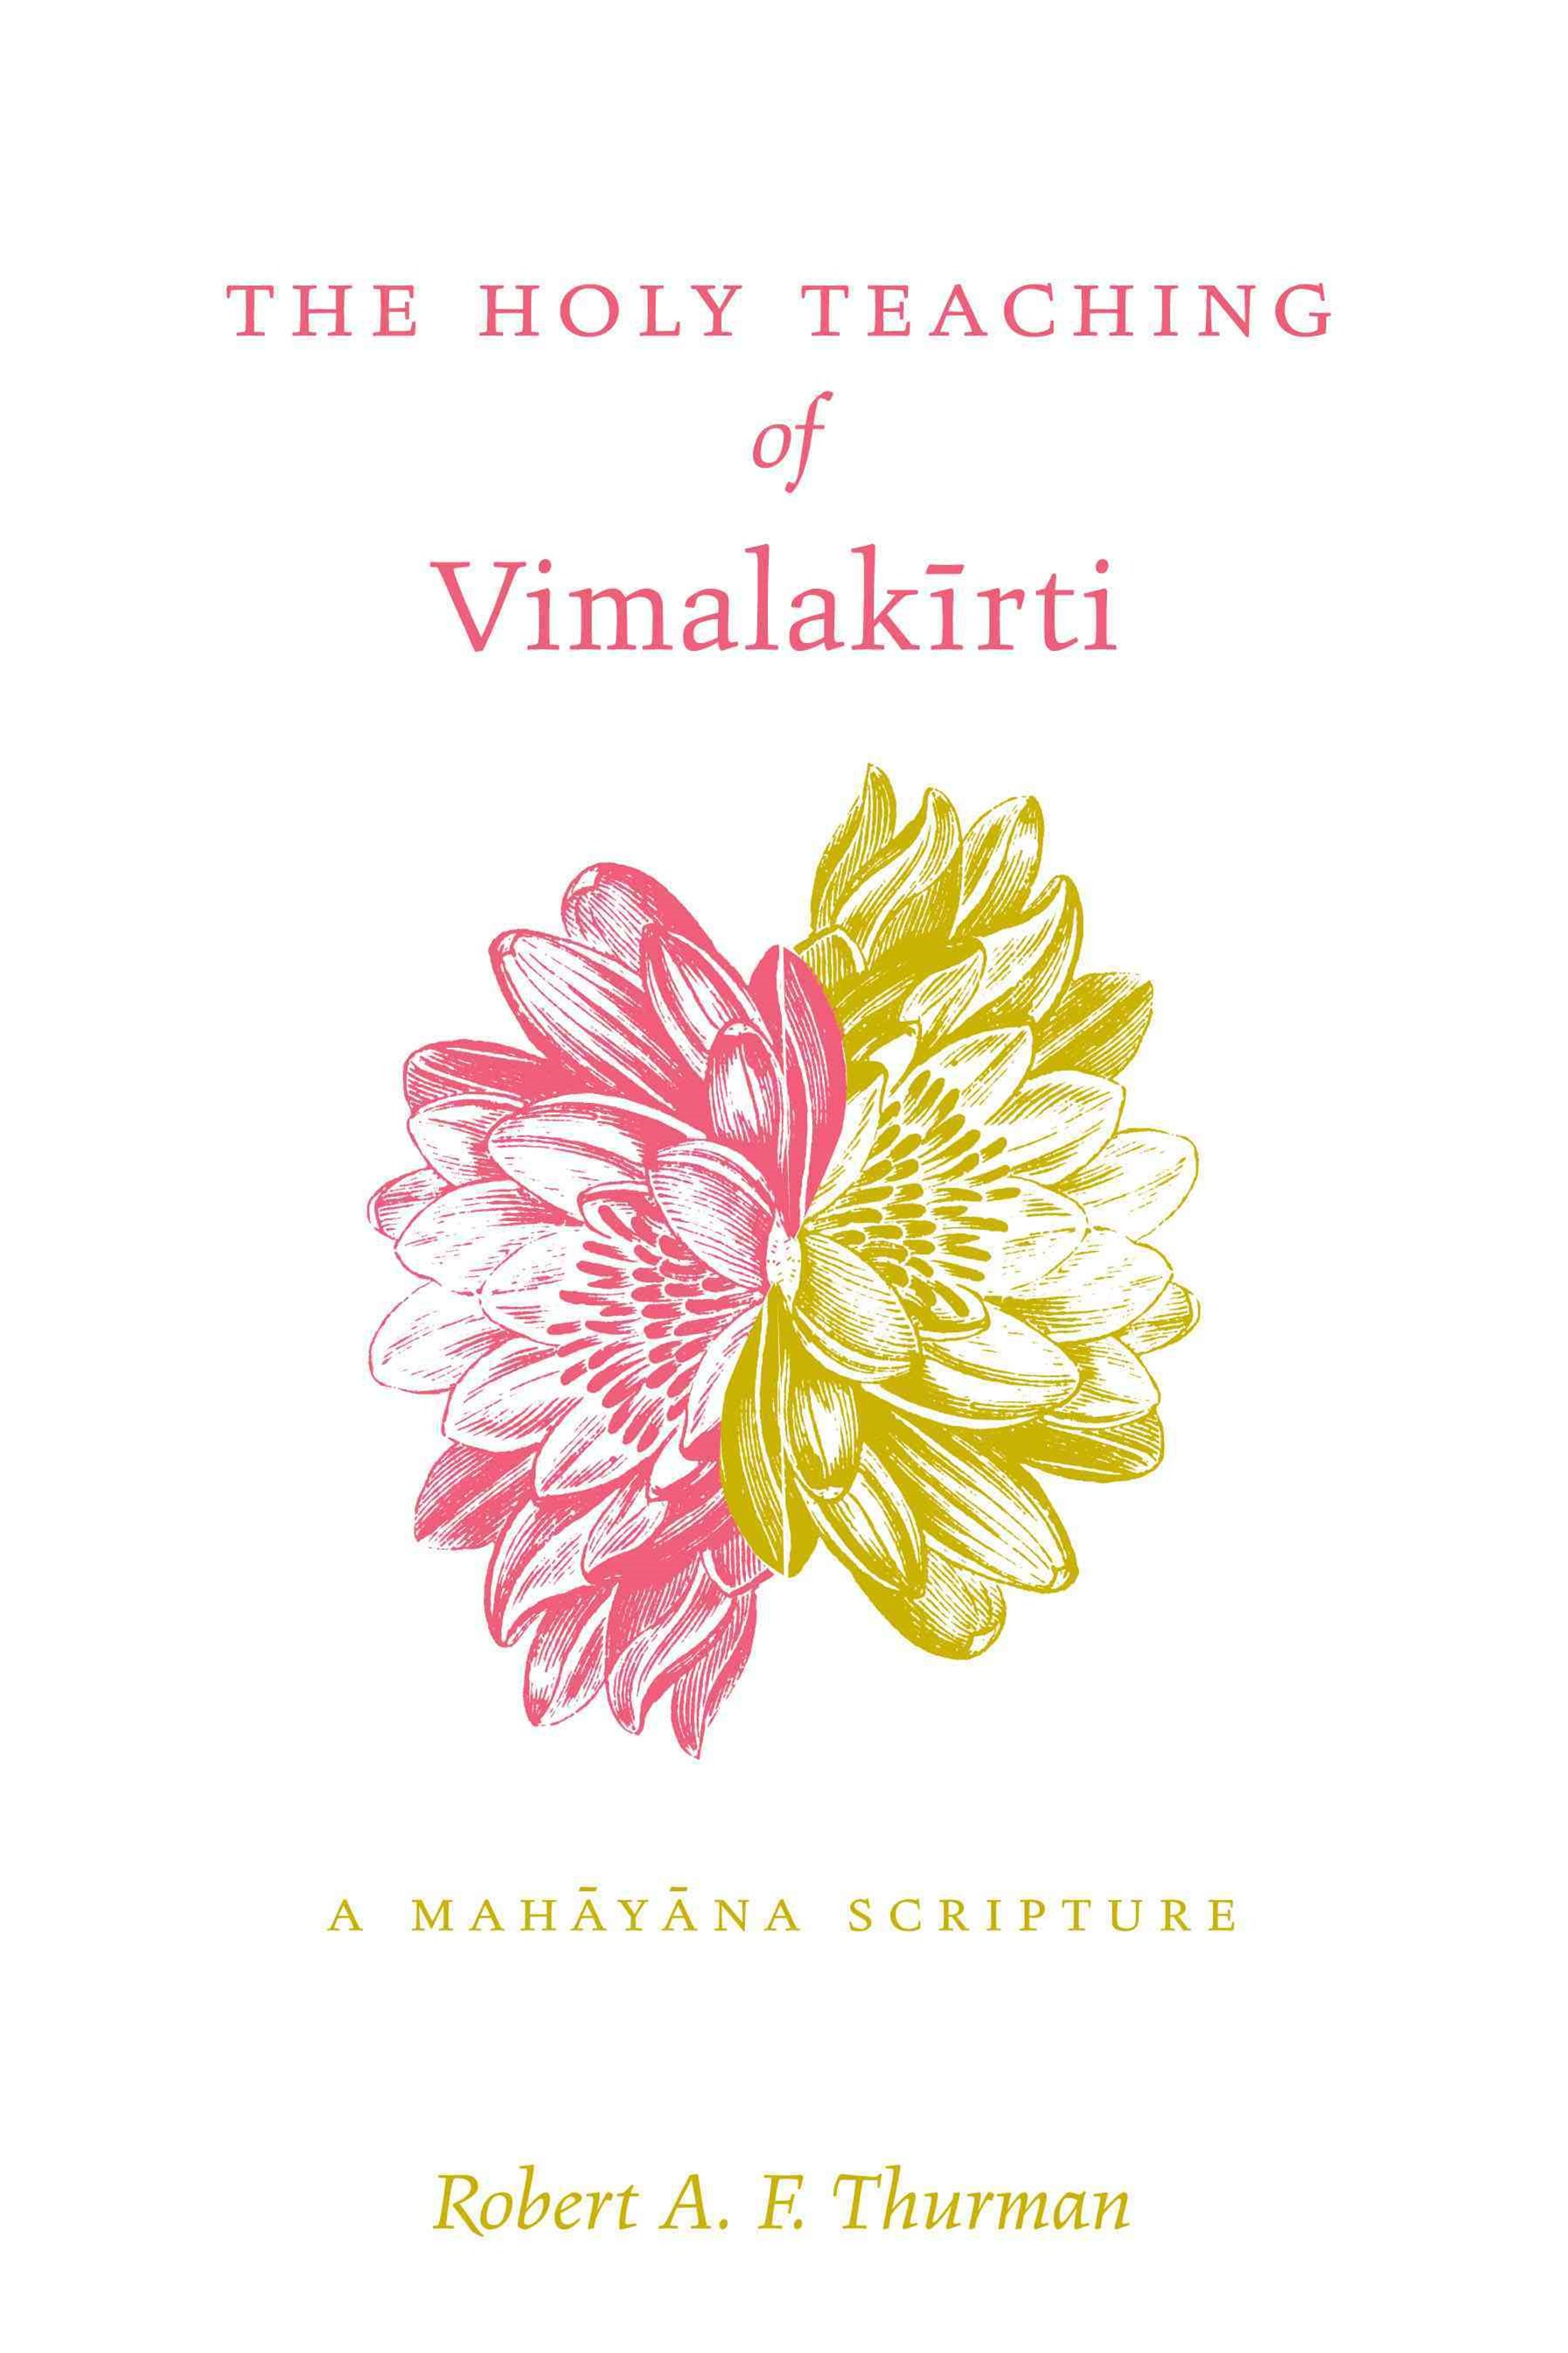 Holy Teaching of Vimalakirti